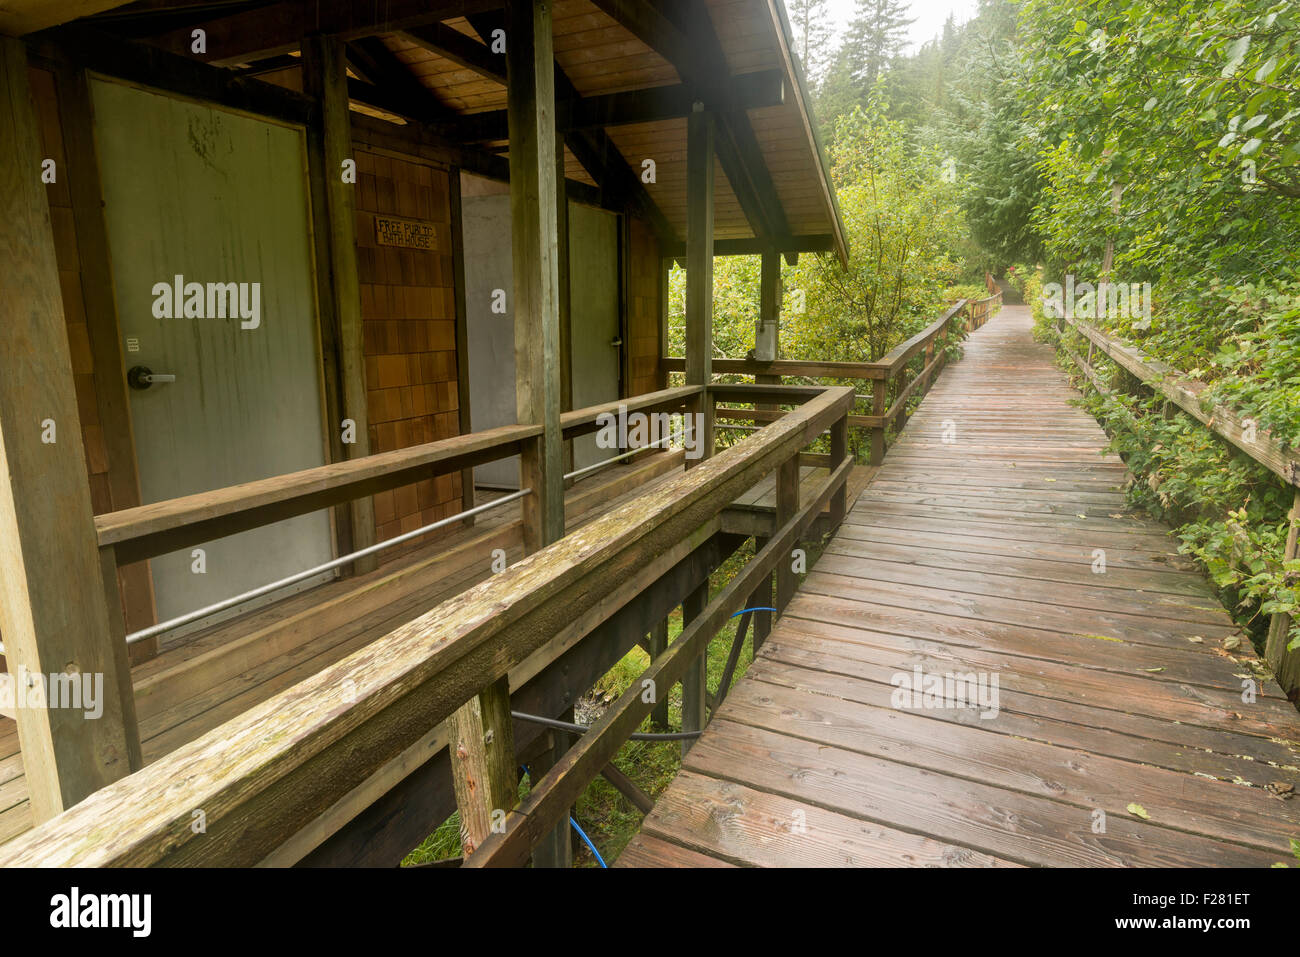 Bathhouse and boardwalk in the small community of Baranof Warm Springs, Alaska. - Stock Image